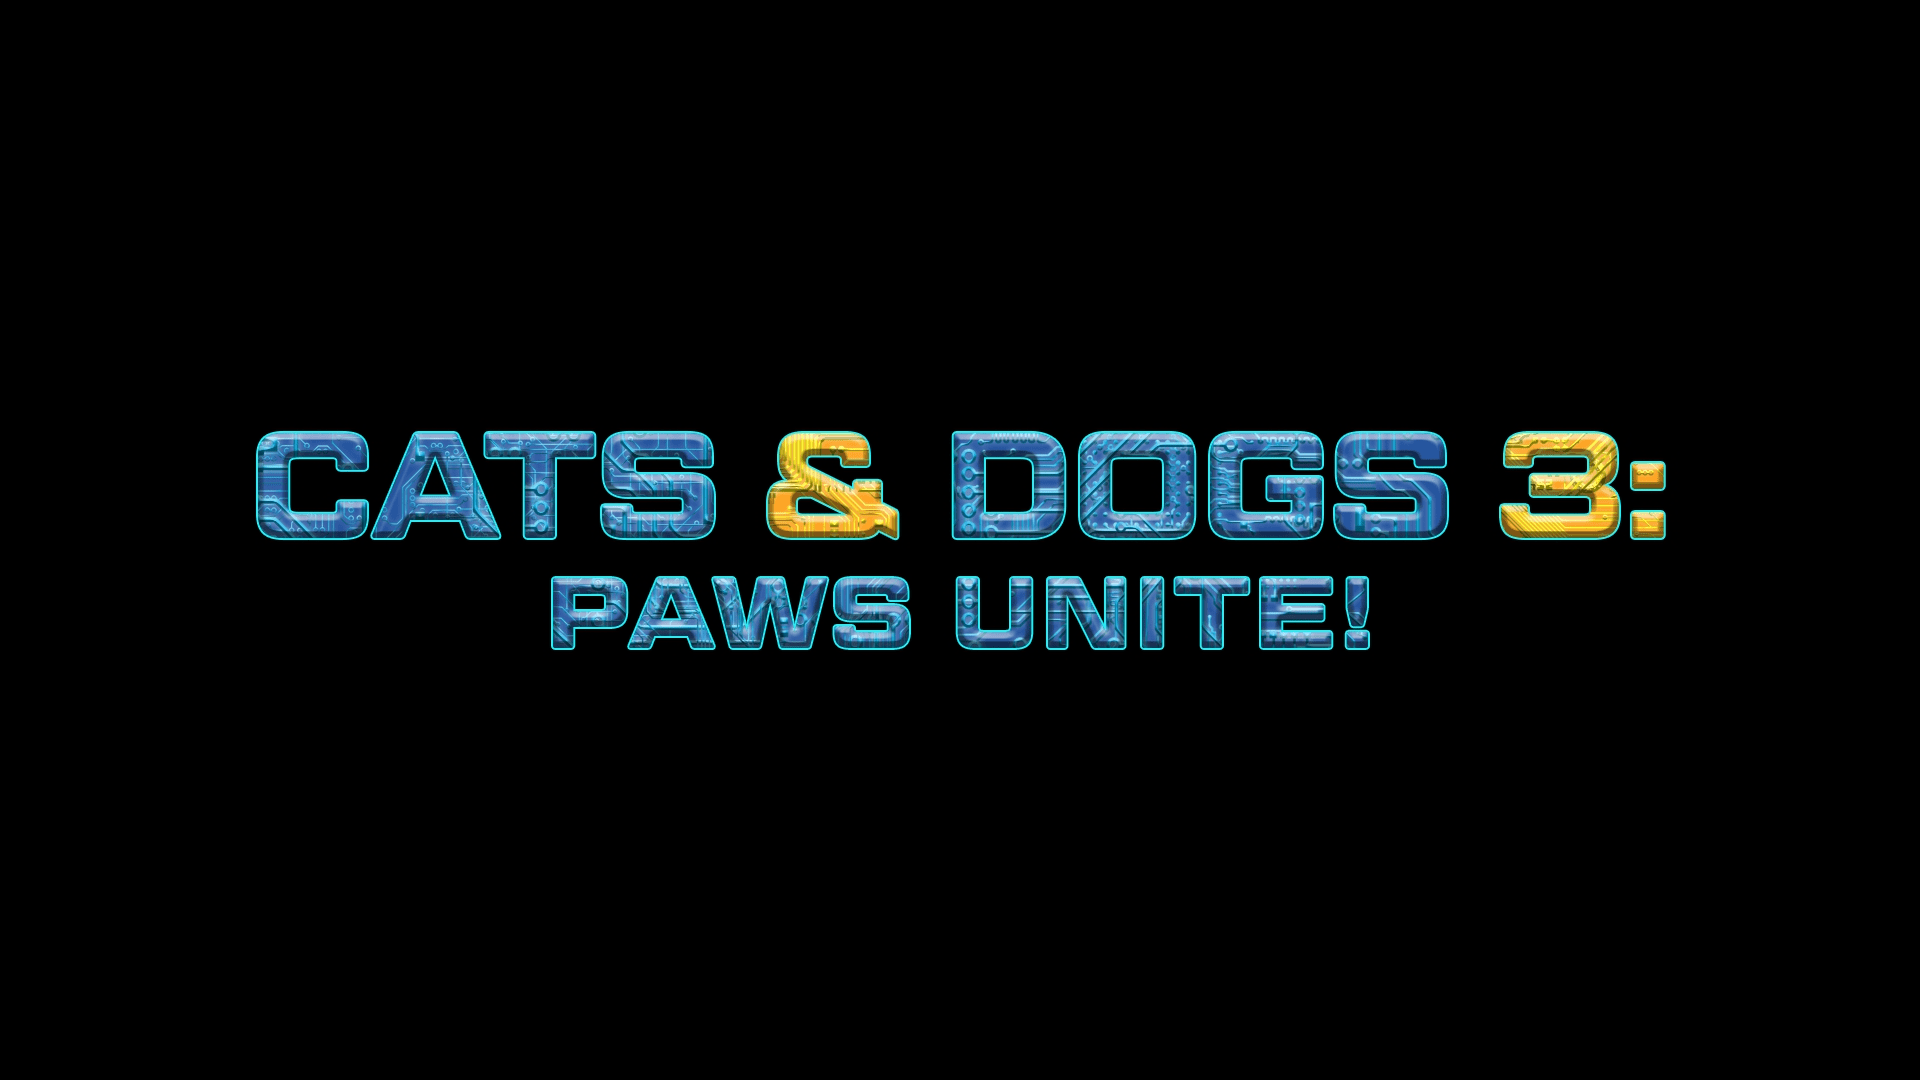 Cats & Dogs 3: Paws Unite [Blu-ray review] 2